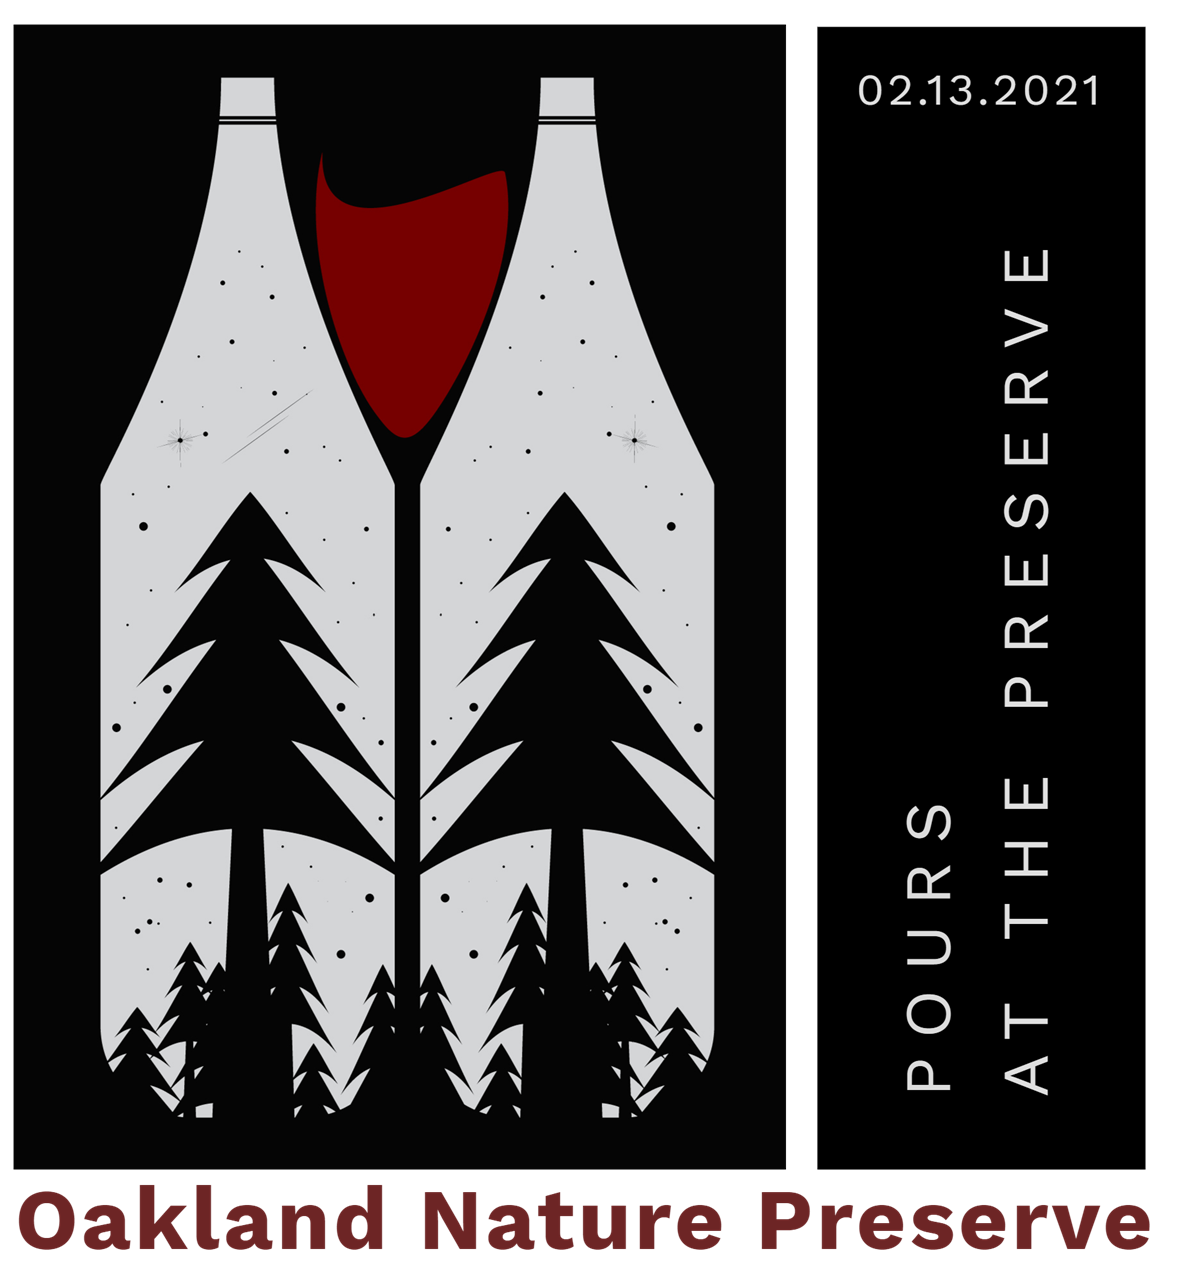 Pours at the Preserve 2021 On the Go in MCO February 2021